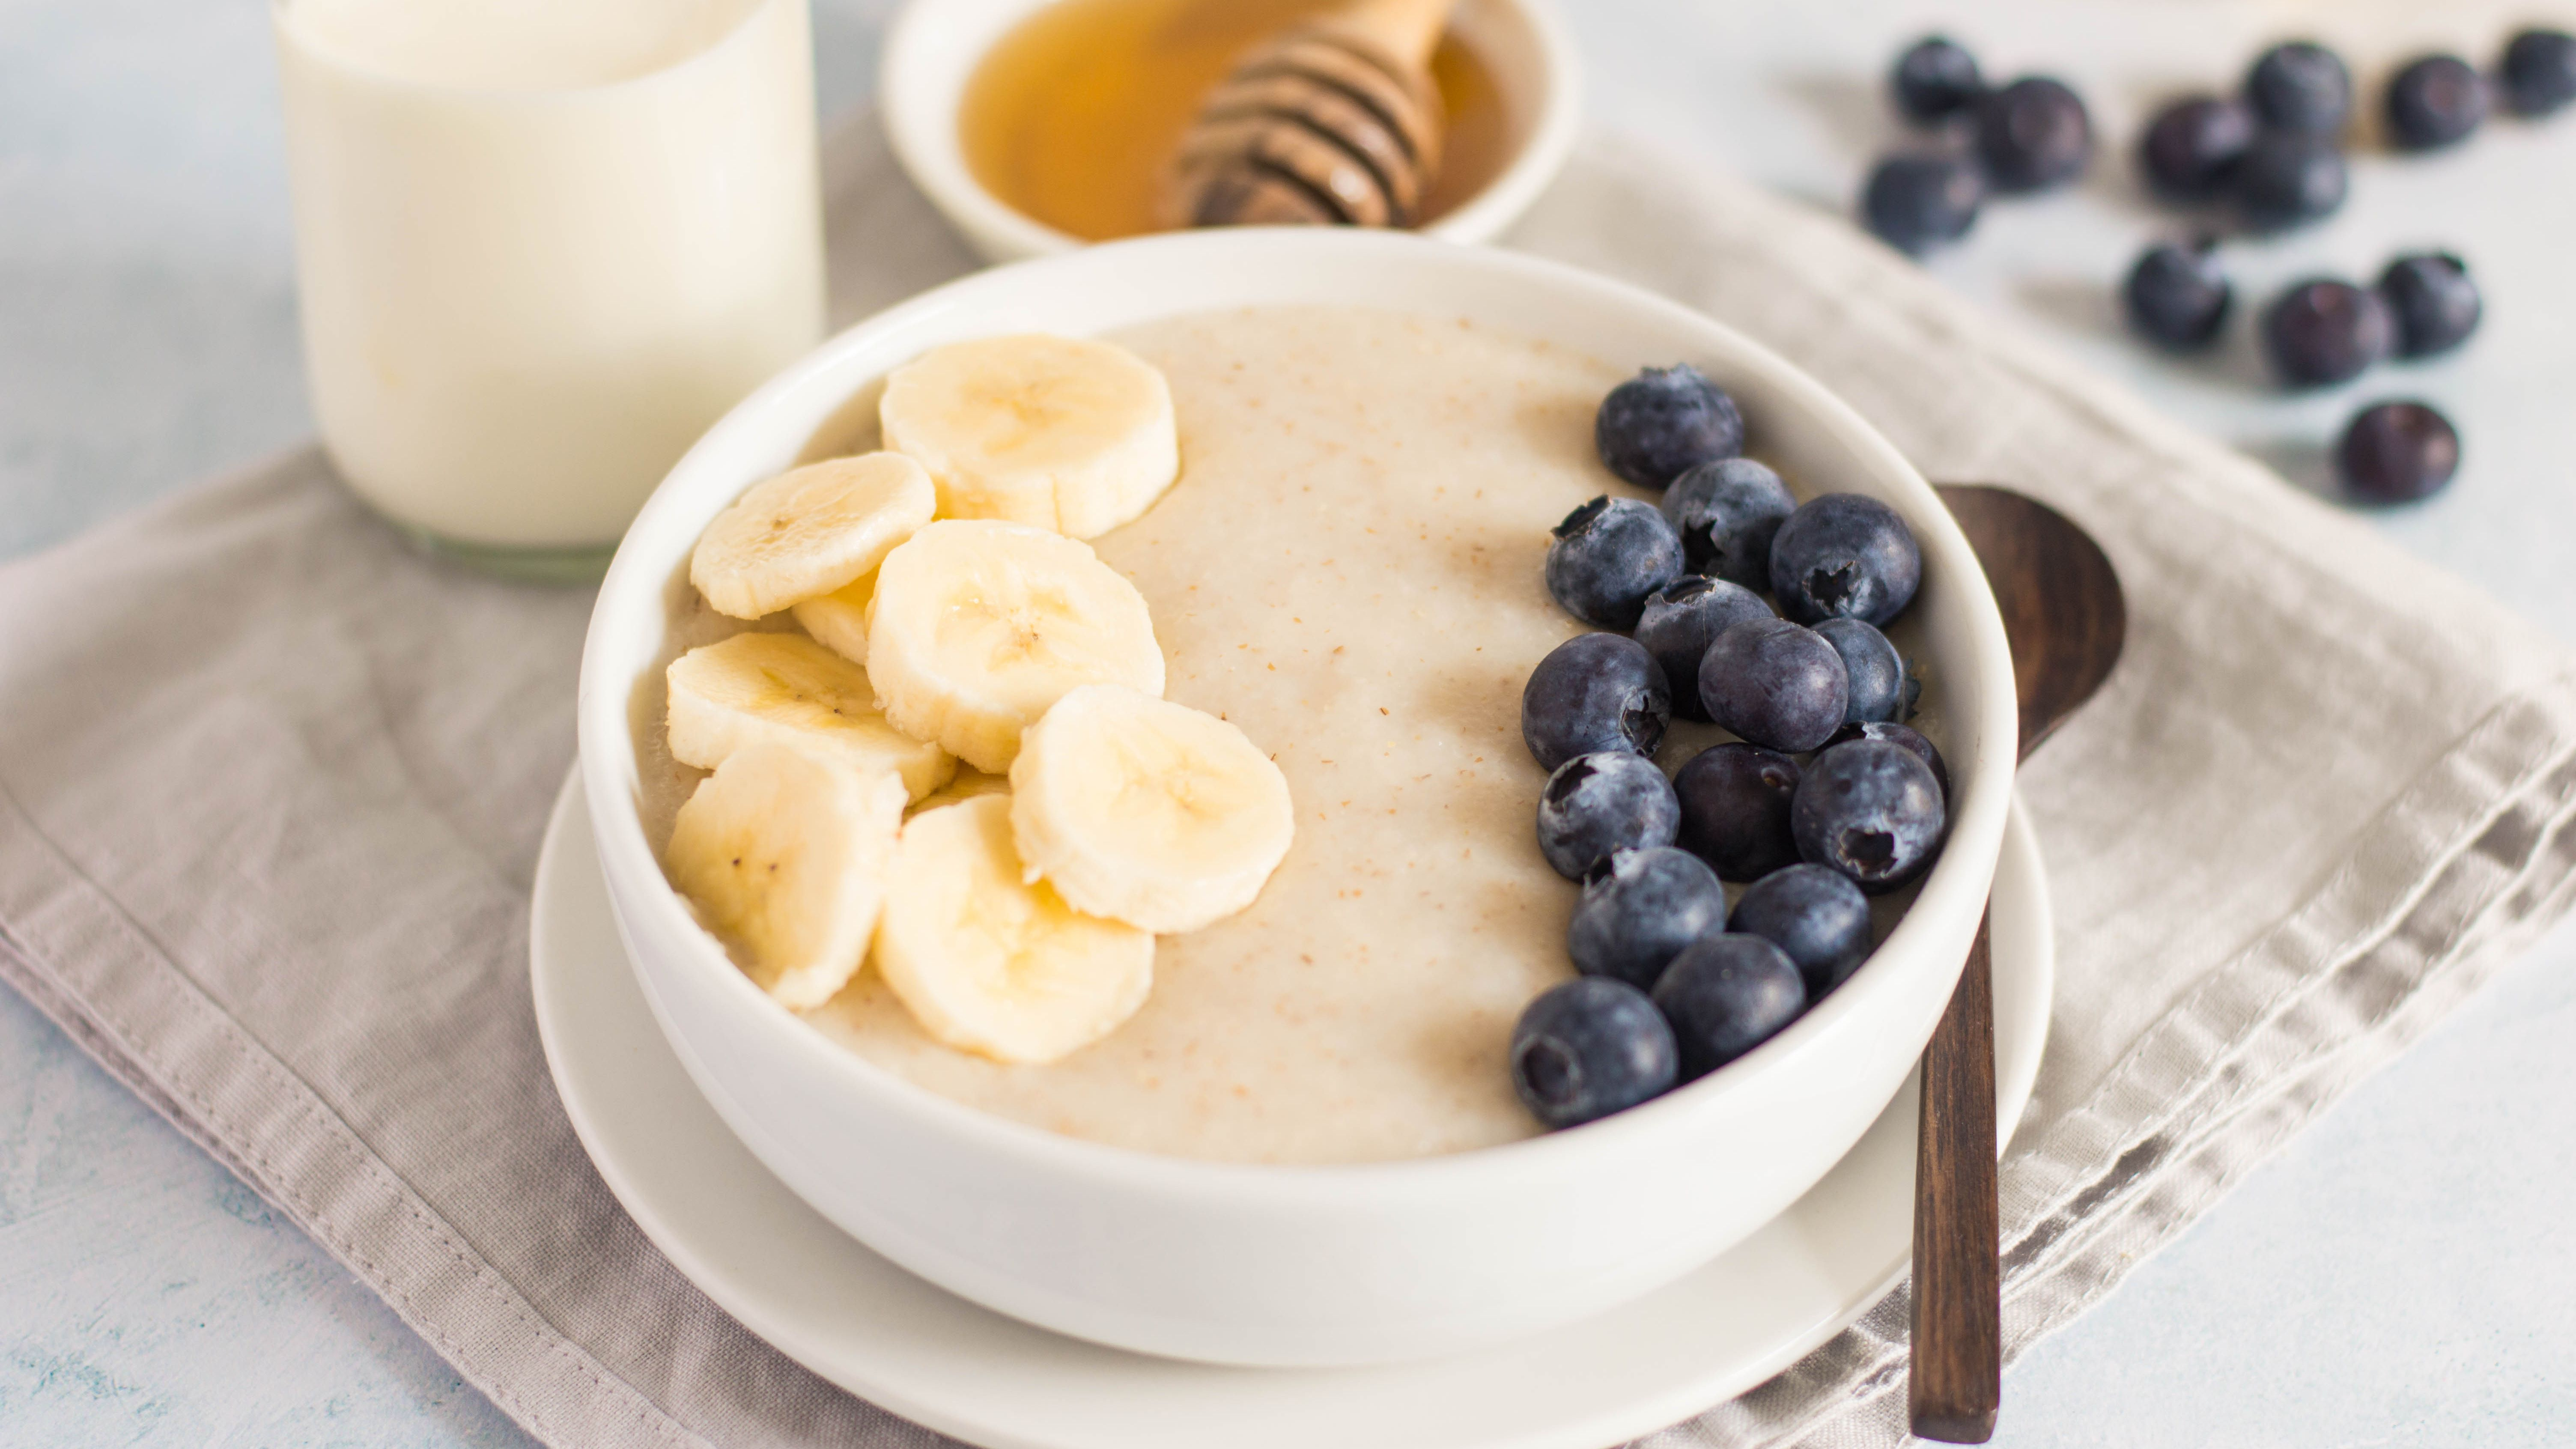 low carb diet cream of wheat vs oatmeal